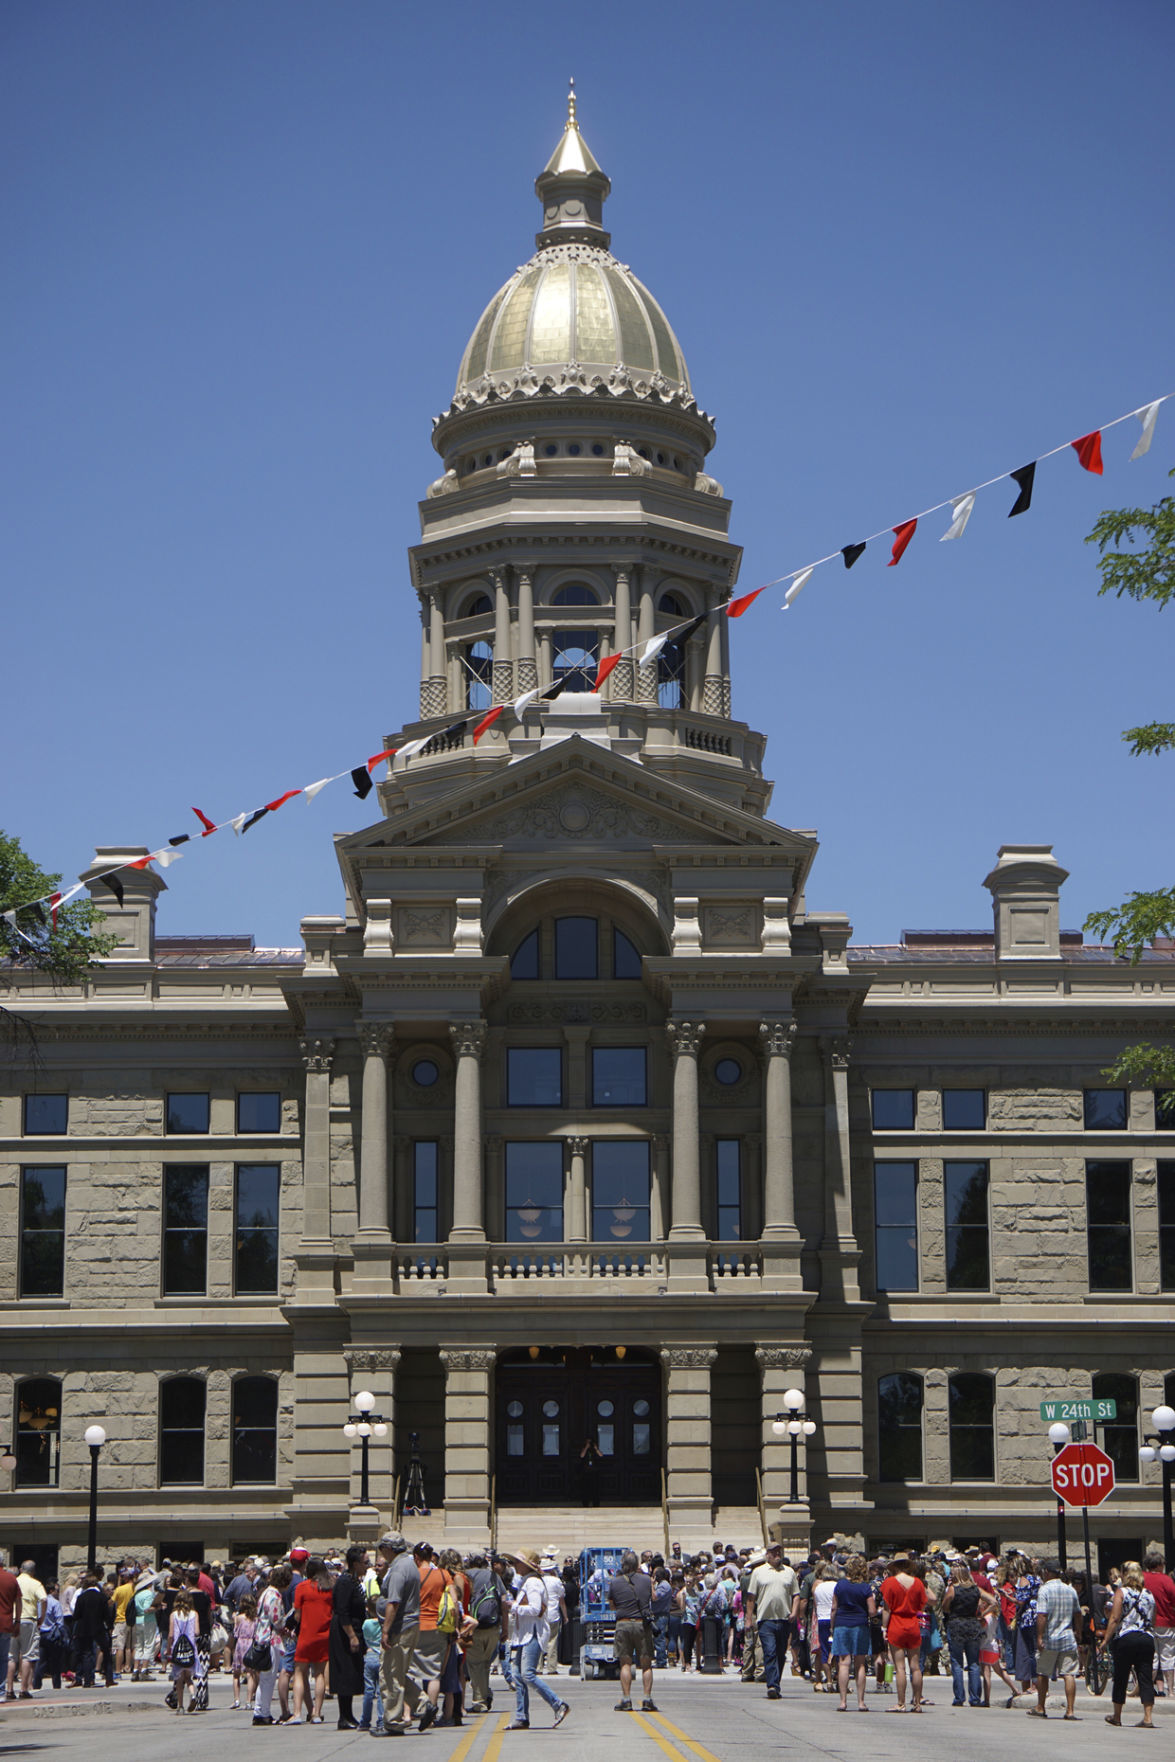 Wyoming Capitol reopens after $300 million renovation